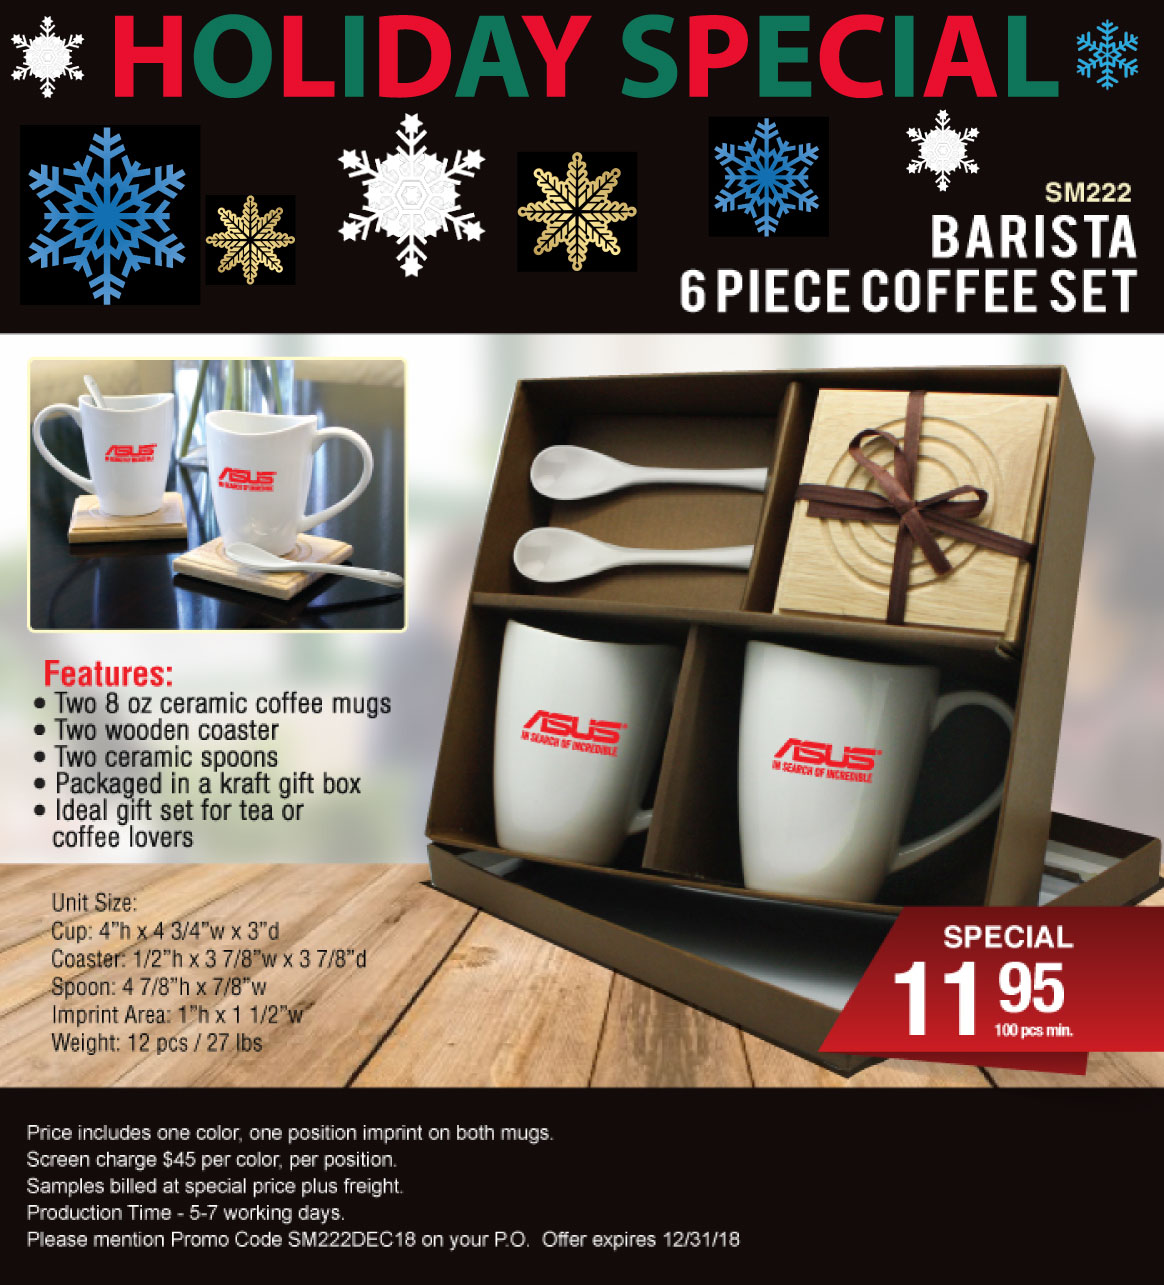 Barista Set Holiday Special